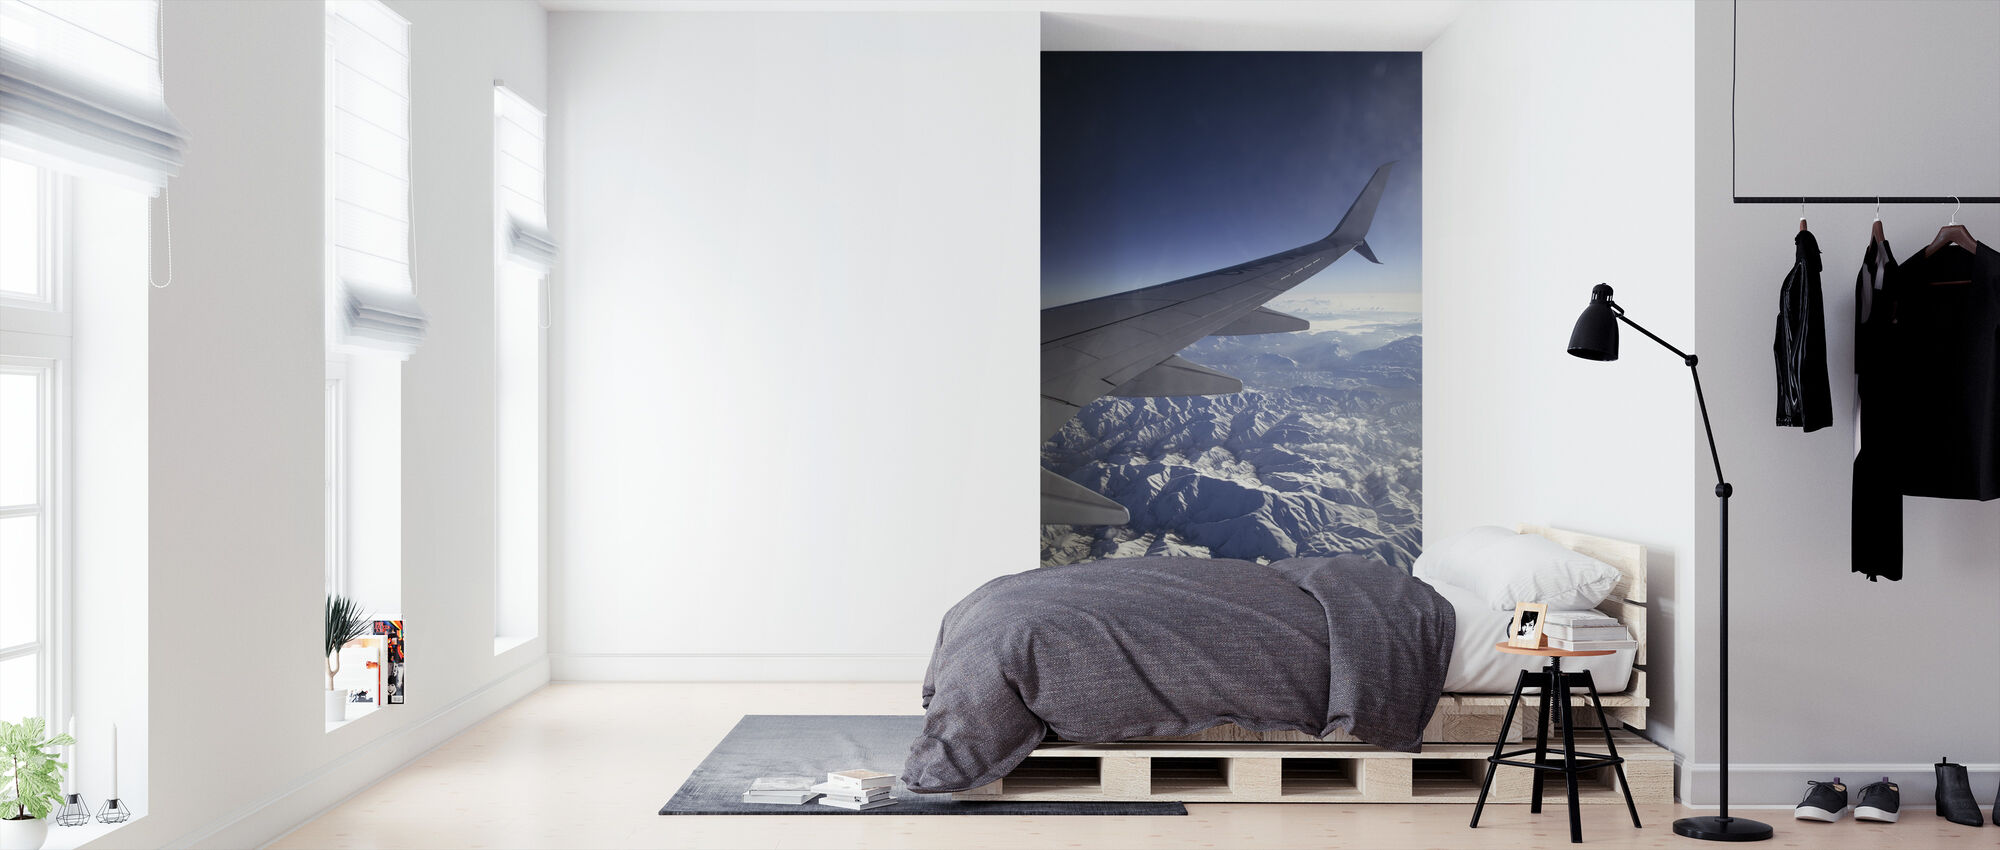 Airplane Wing - Wallpaper - Bedroom